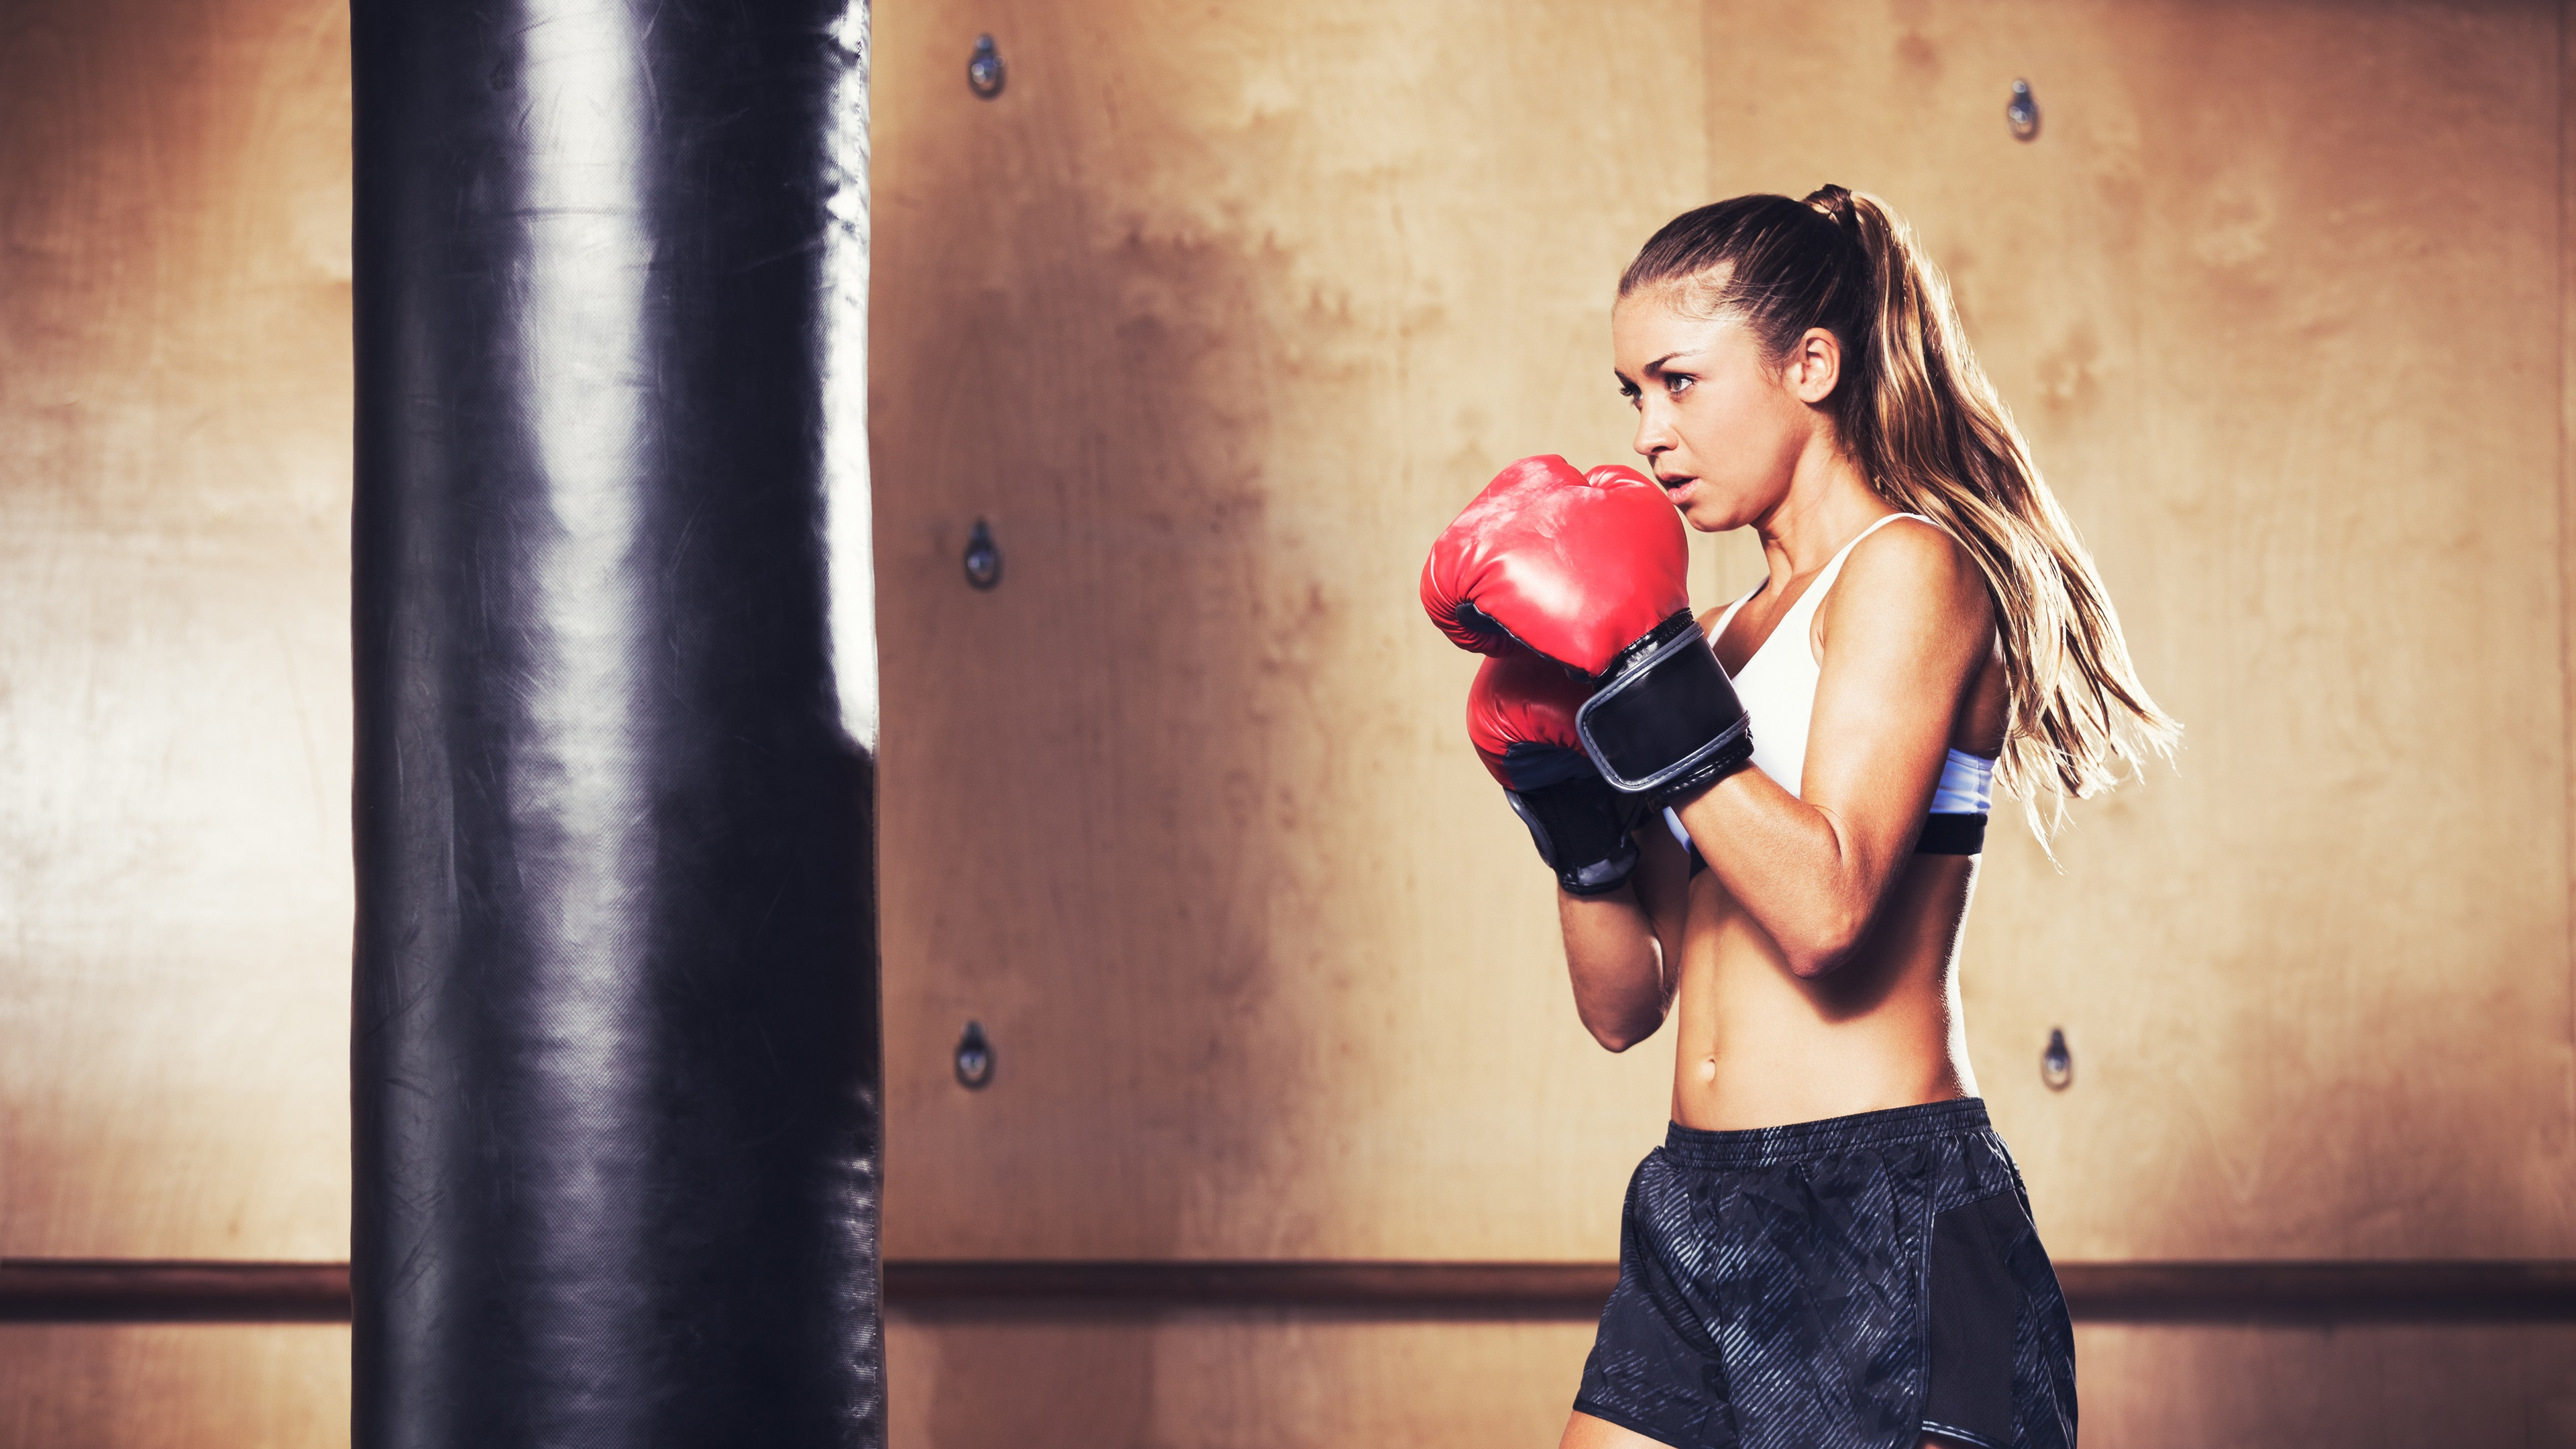 Wallpaper Boxing Girl Training 3840x2160 UHD 4K Picture Image